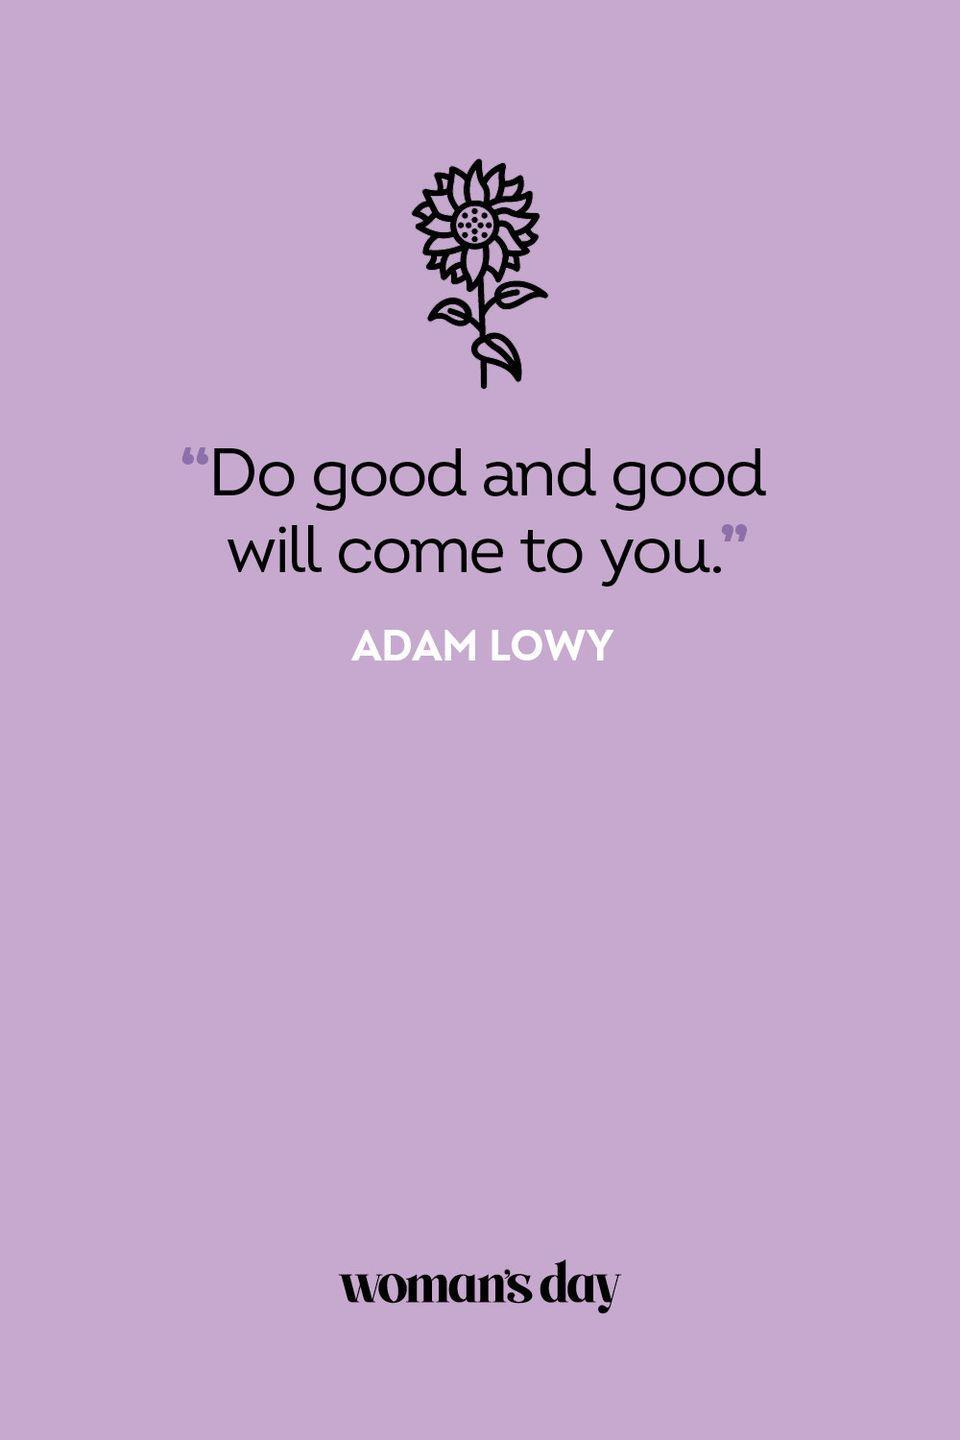 <p>Do good and good will come to you.</p>